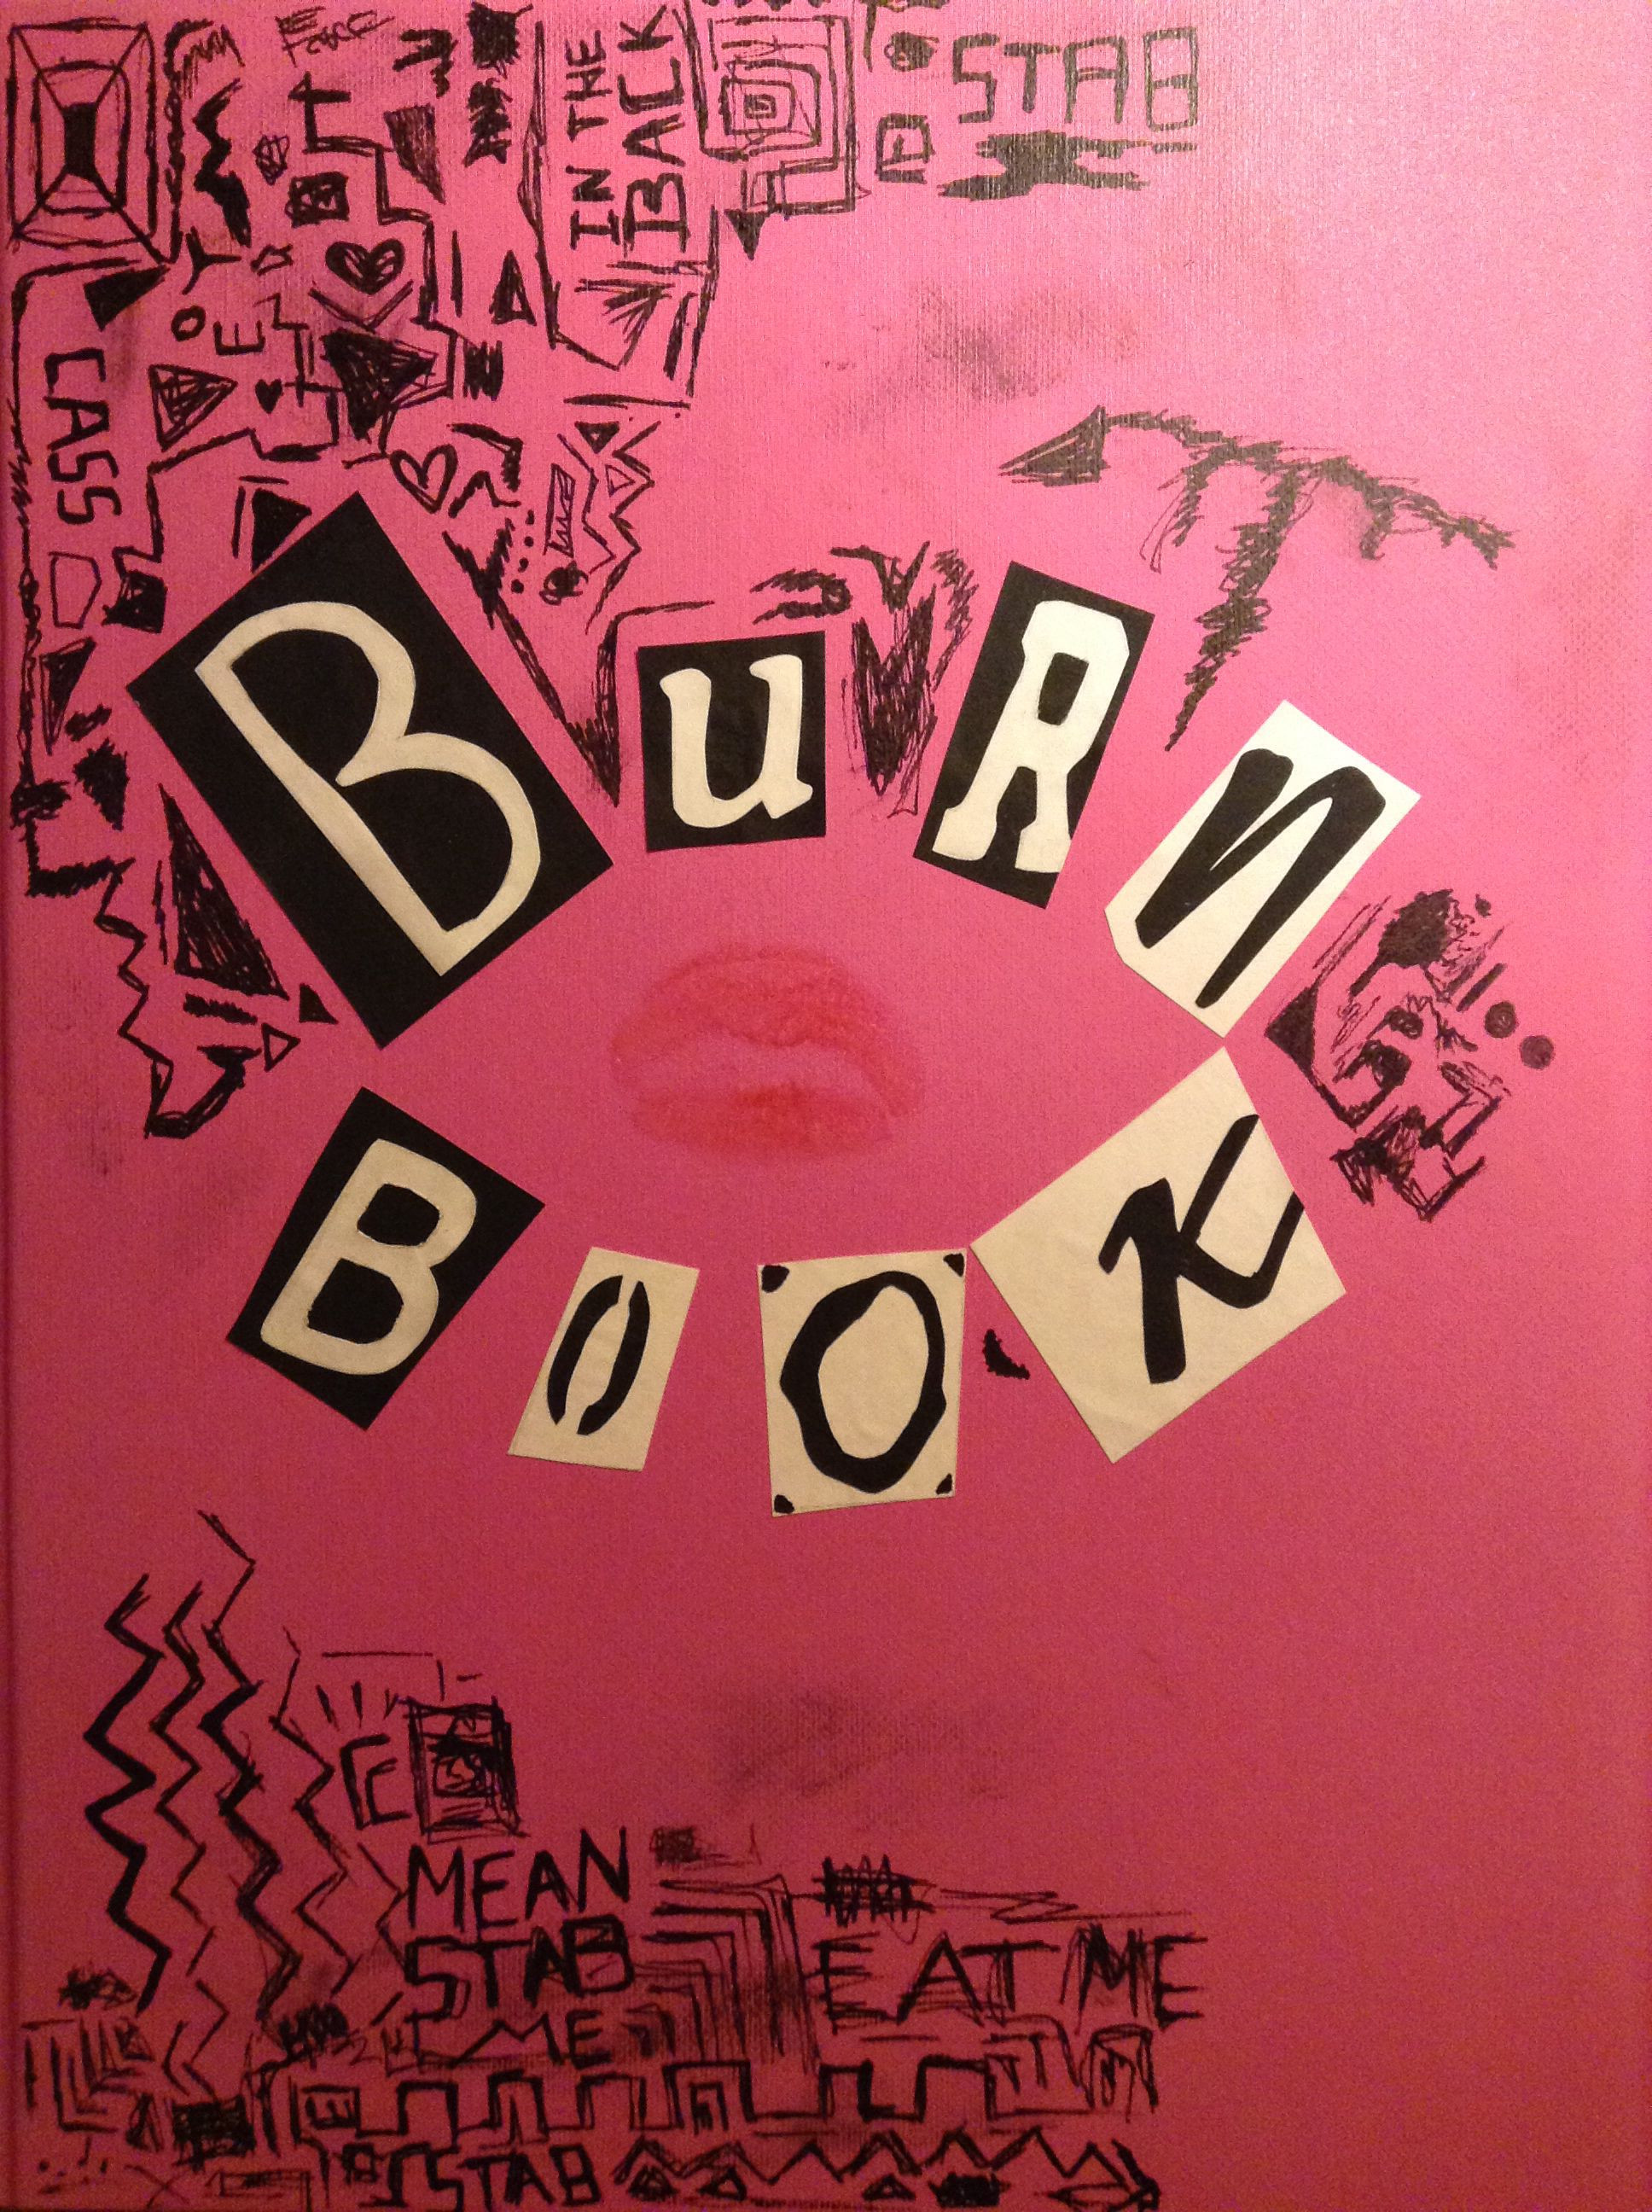 Diy Meaning  diy hand made burn book from mean girls